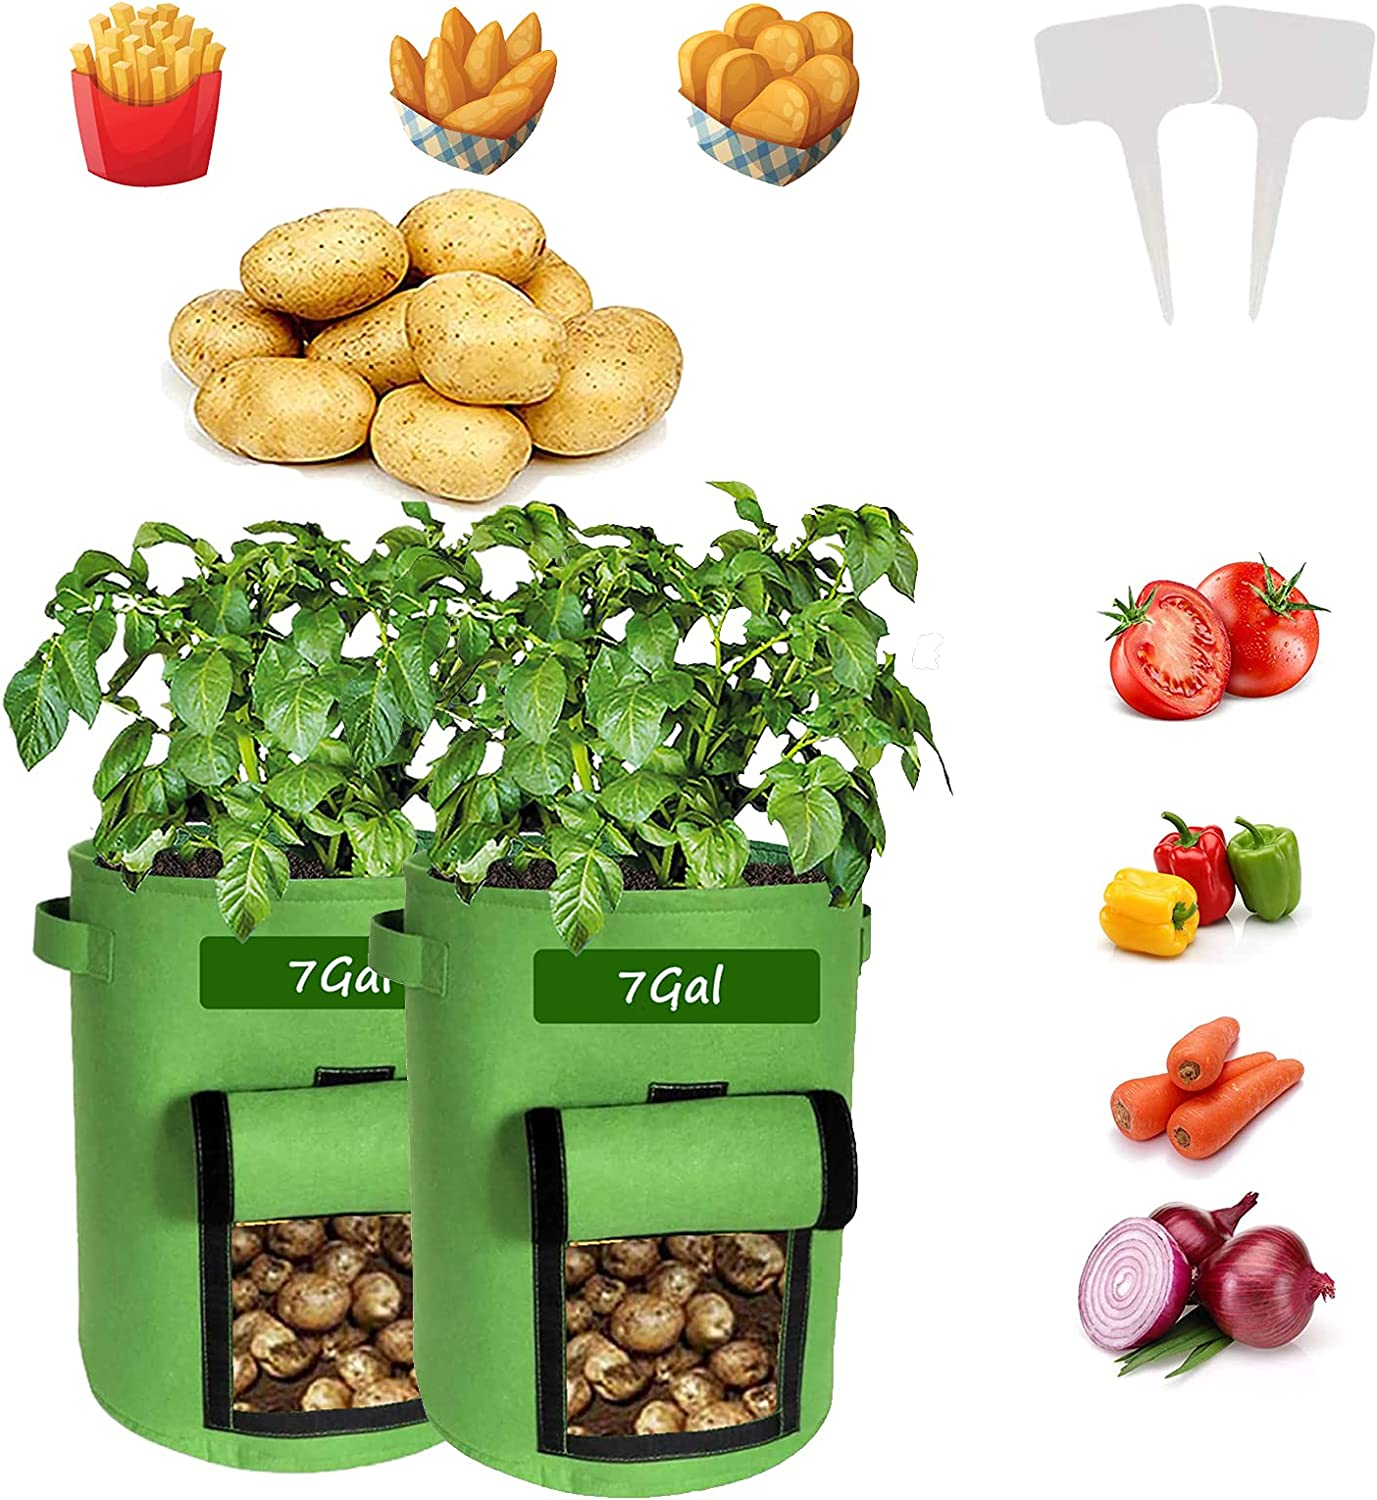 Potato Grow Bags, 2 Pack Heavy-Duty Plant Grow Bag with Dual Handles and Velcro Window Ideal, Garden Vegetable Planter for Tomato, Carrot, Onion, Fruits, and Vegetables